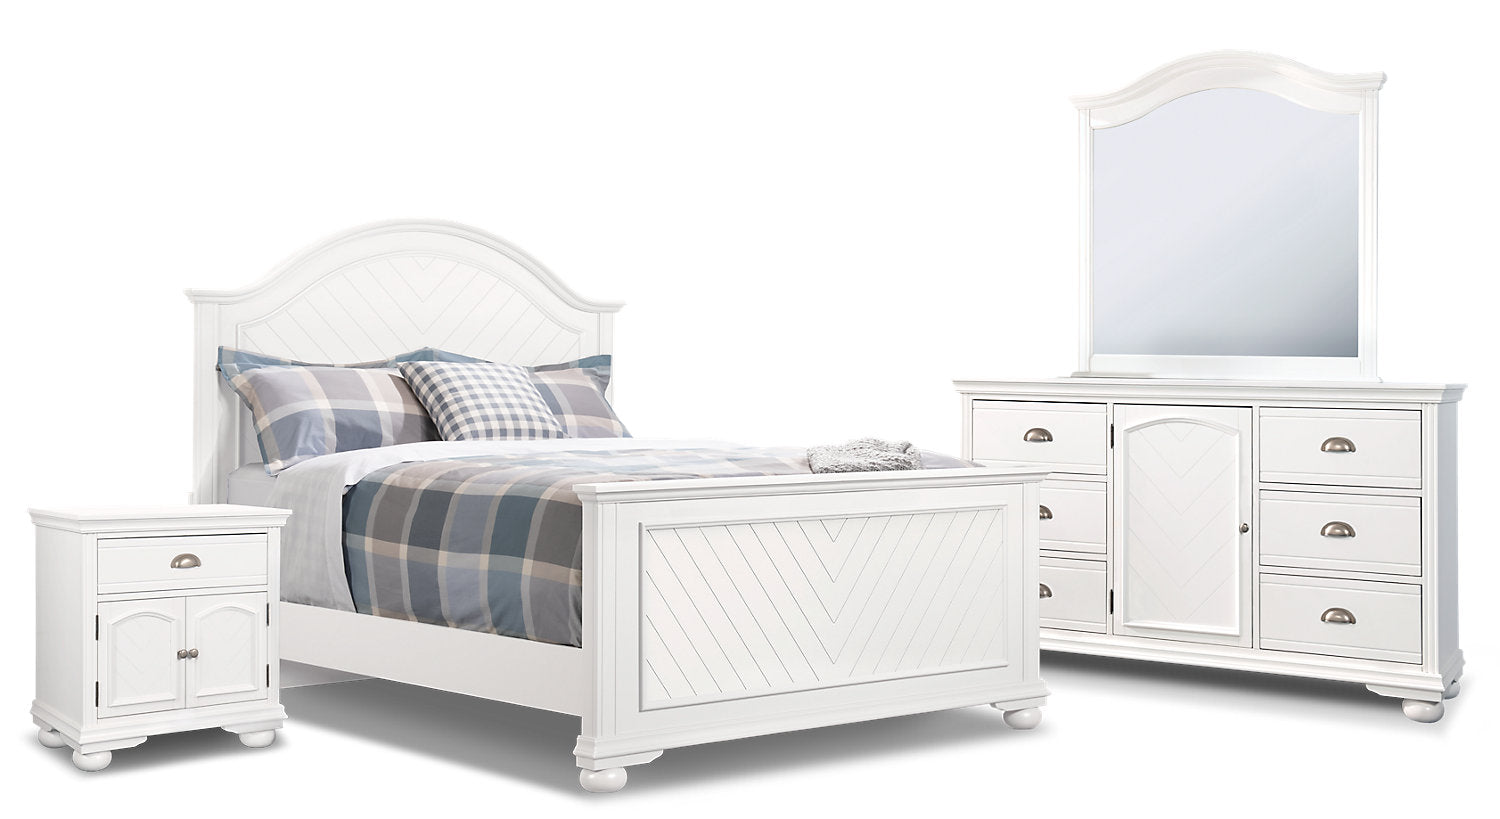 Brooke 6 Piece Queen Bedroom Package White The Brick